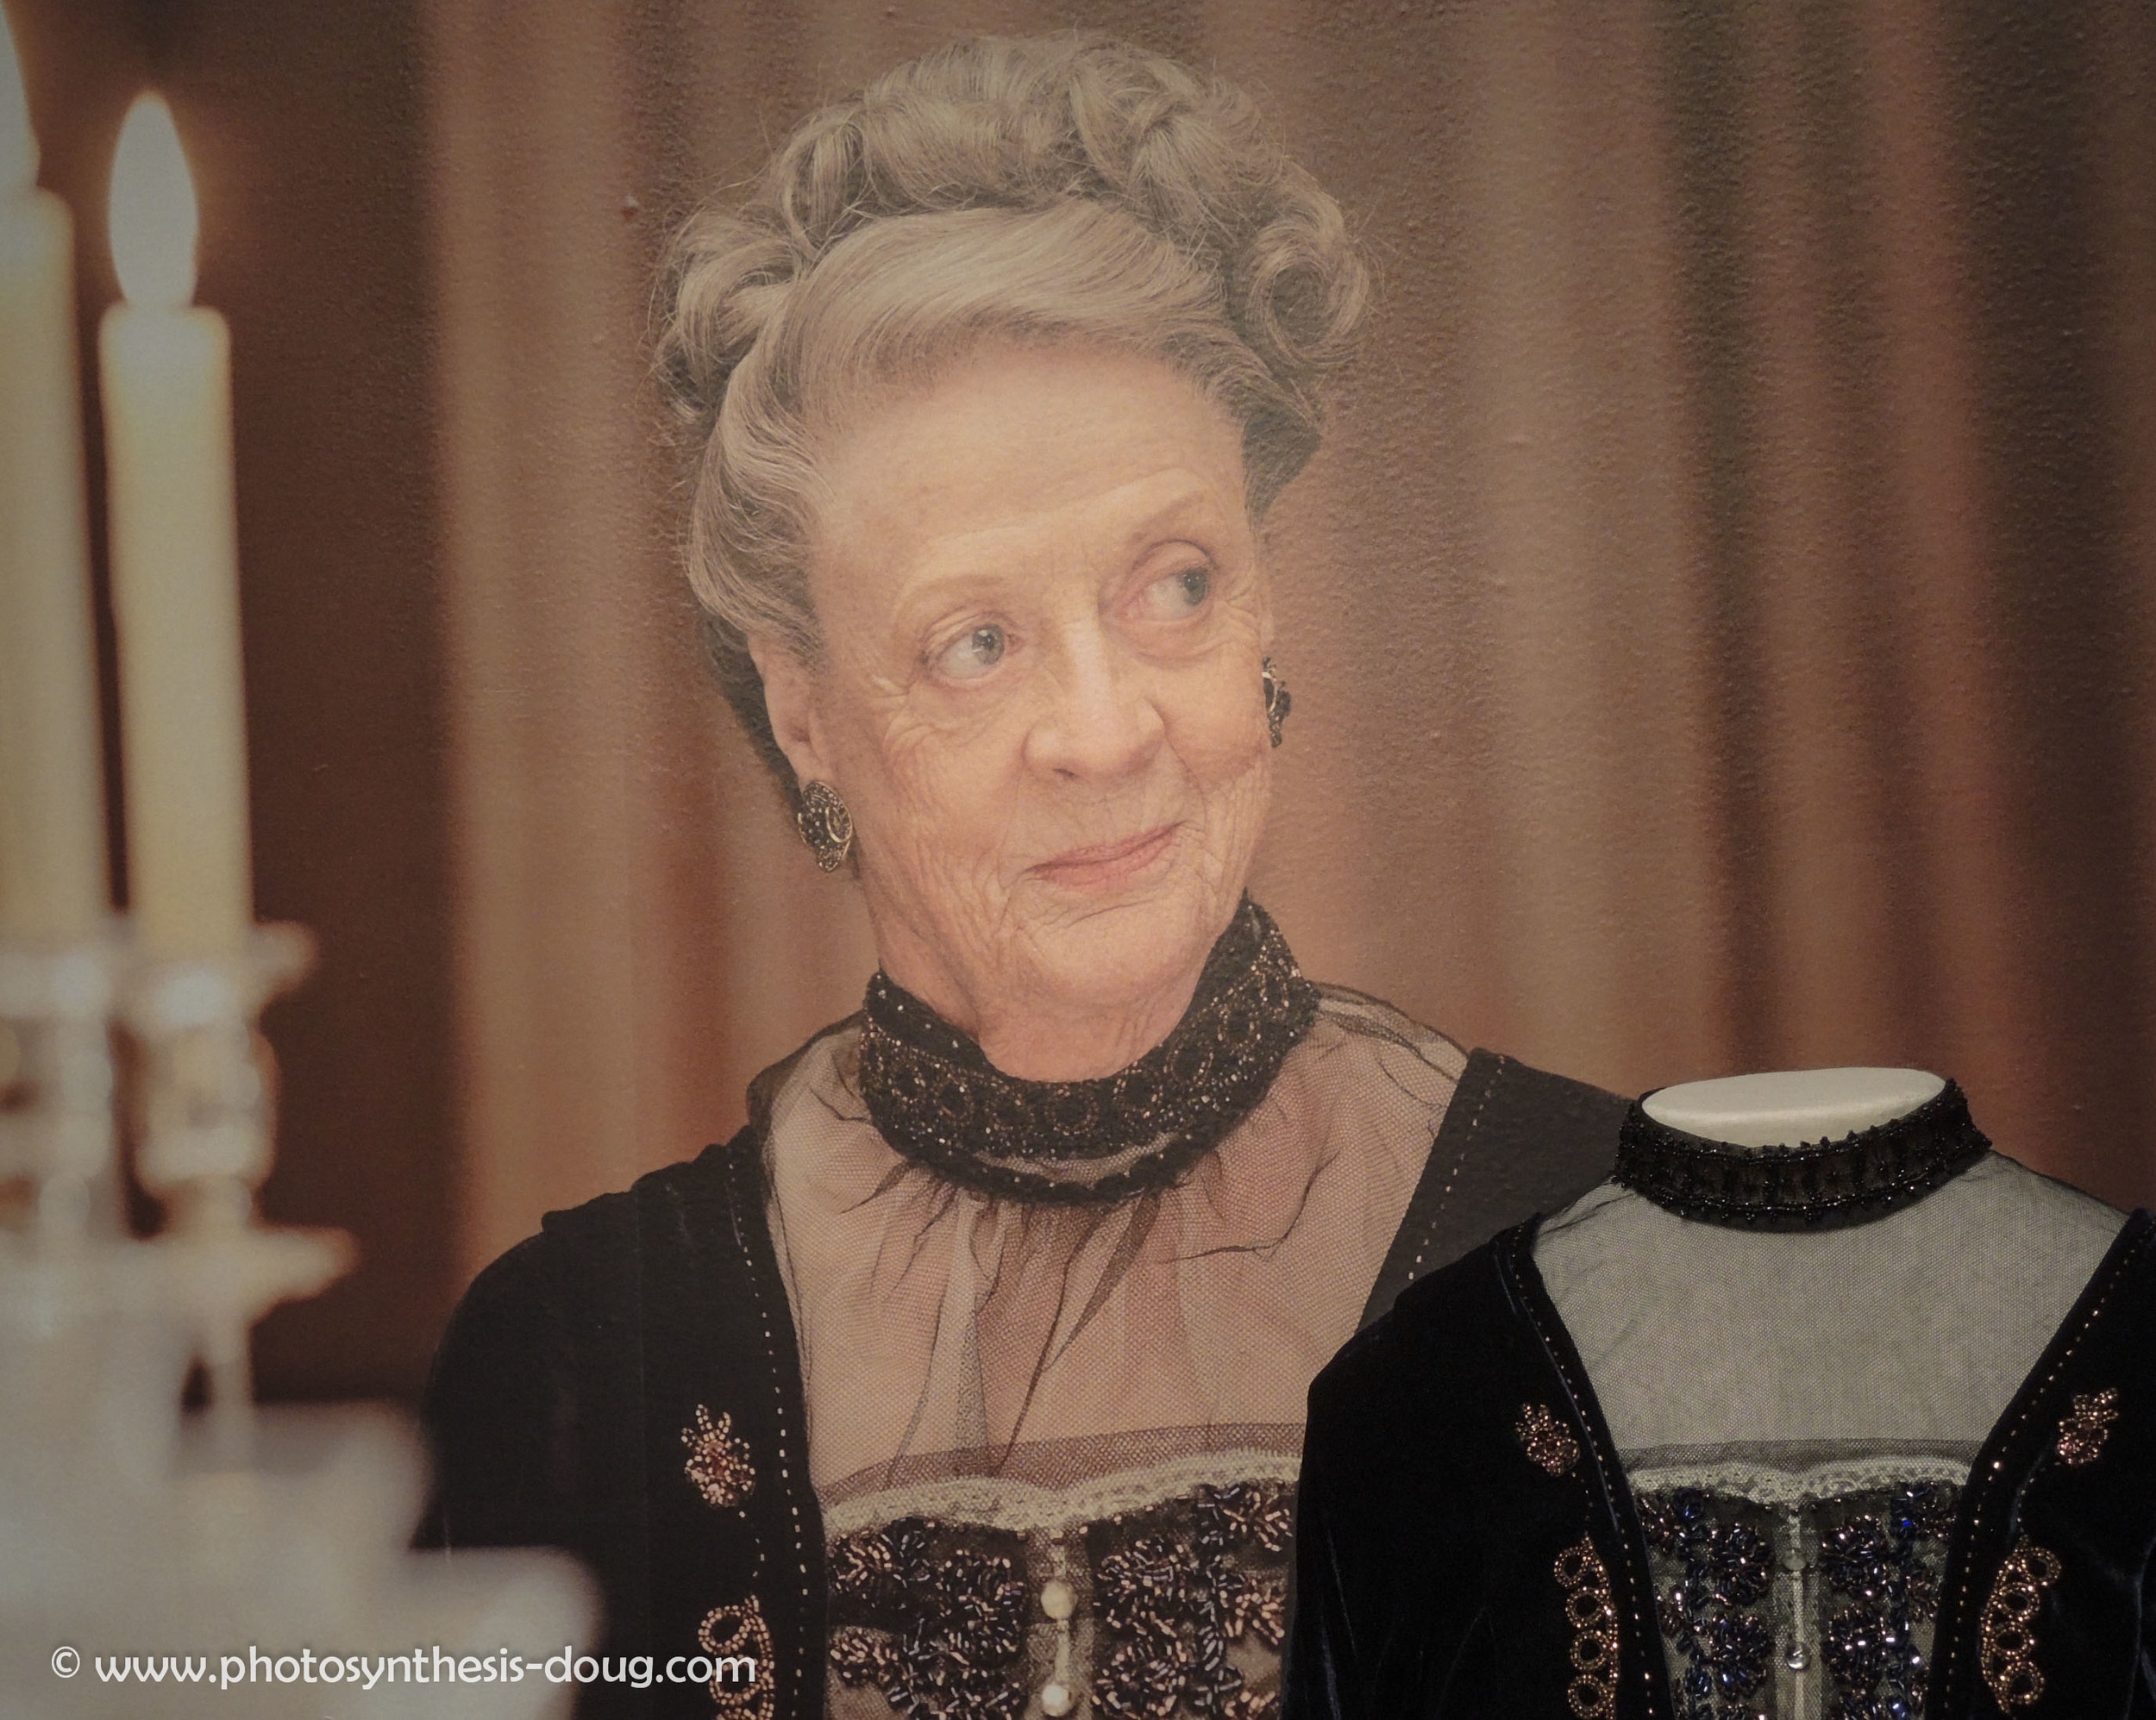 Downton Abbey Costume Exhibit at Winterthur, PA